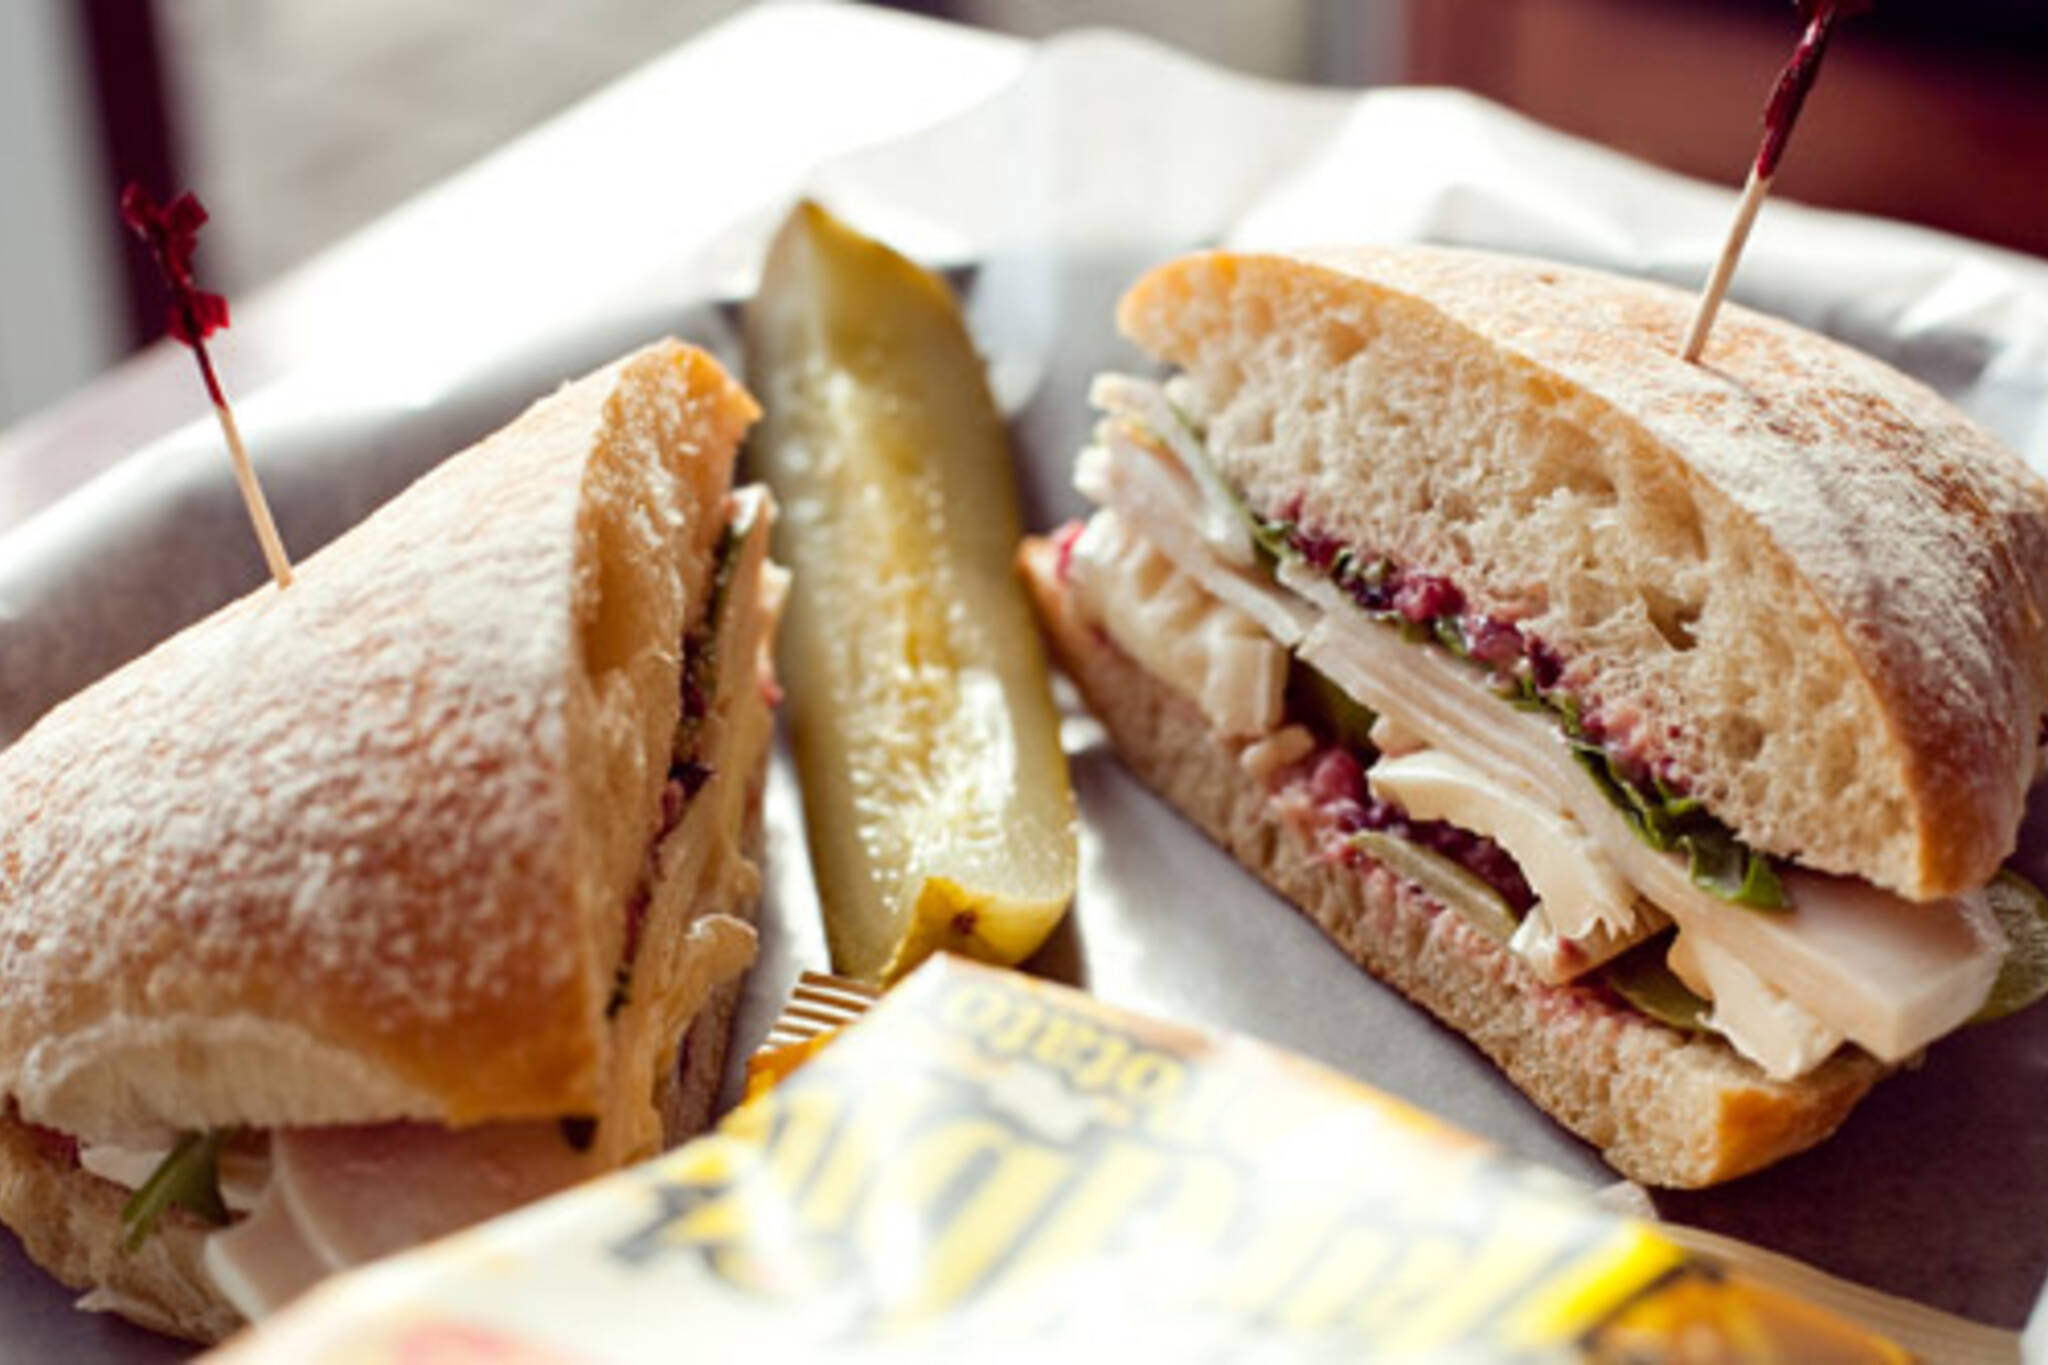 Turkey, Brie and Green Apple sandwich at Artisano Bakery Cafe